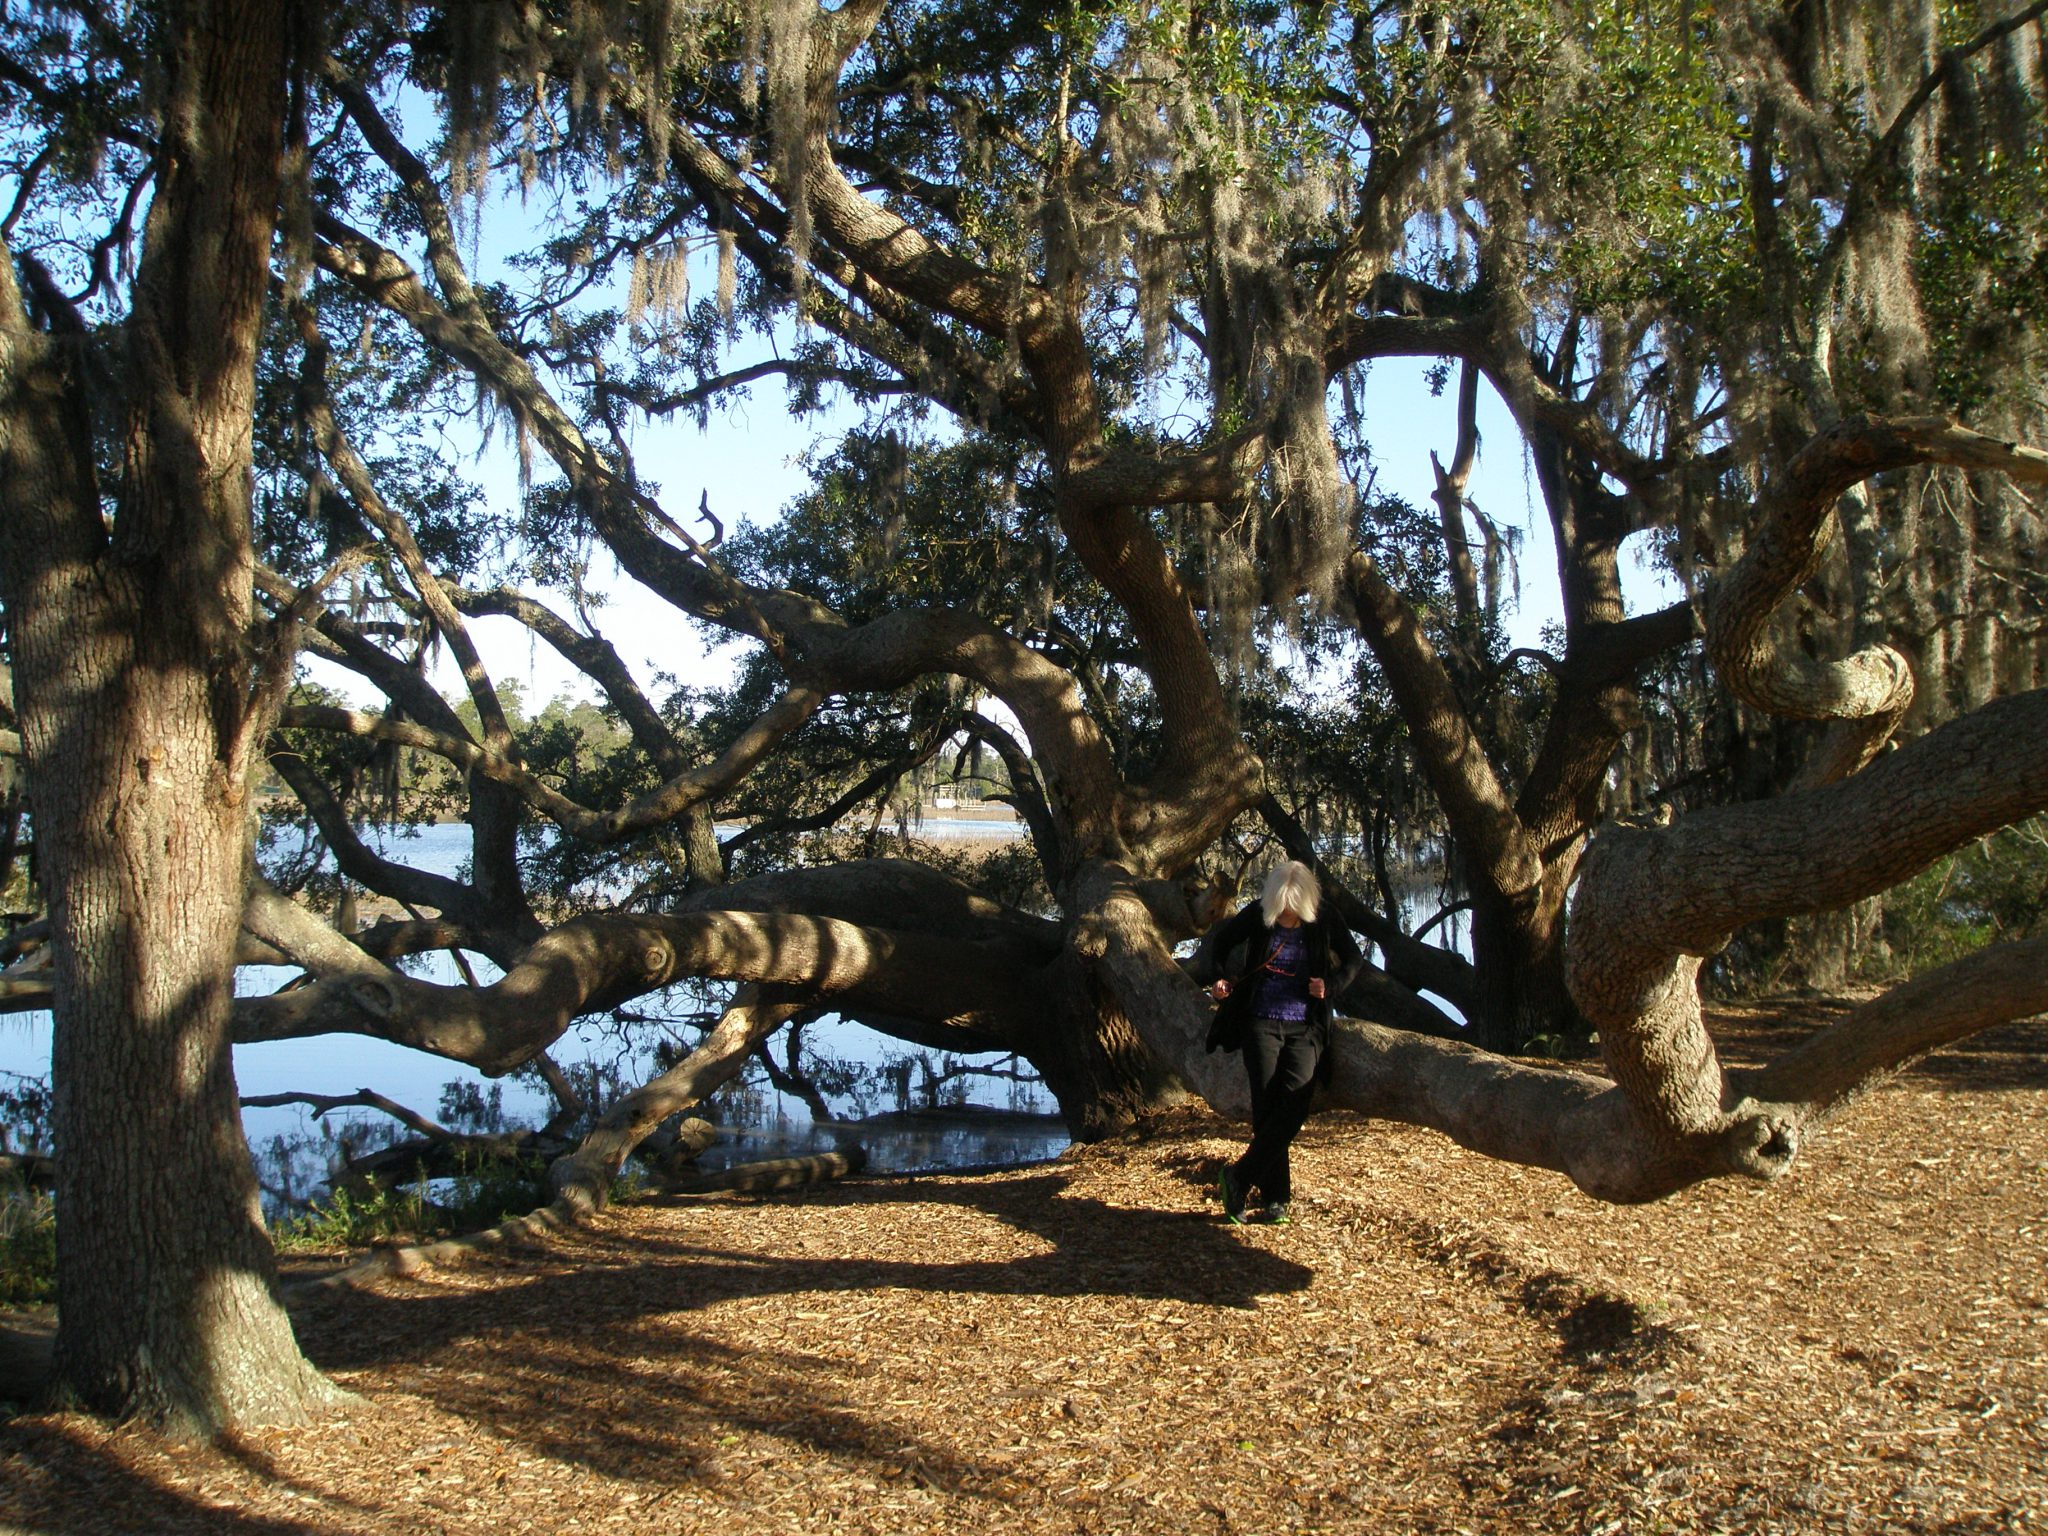 Donn, trying on a Live Oak tree for size